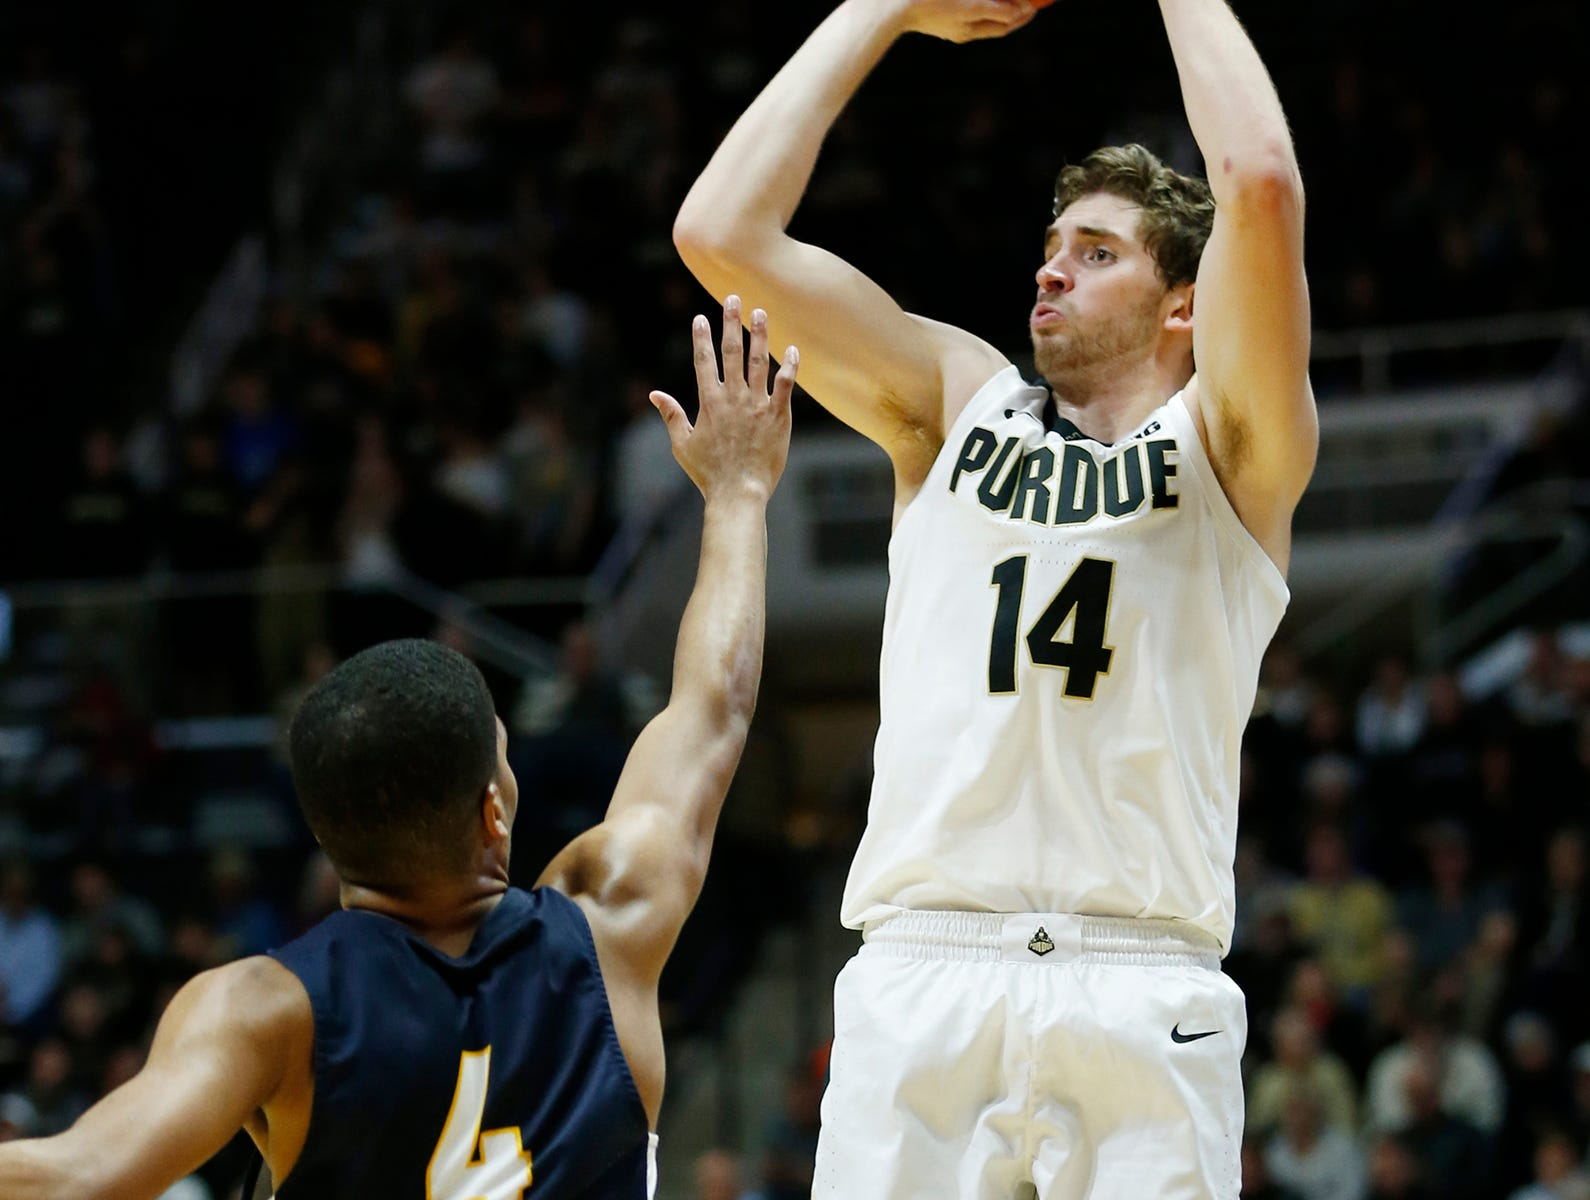 Ryan Cline of Purdue drains a three-point shot over West Stowers of Marian University Thursday, November 1, 2018, at Mackey Arena. Purdue defeated Marian University 75-56.